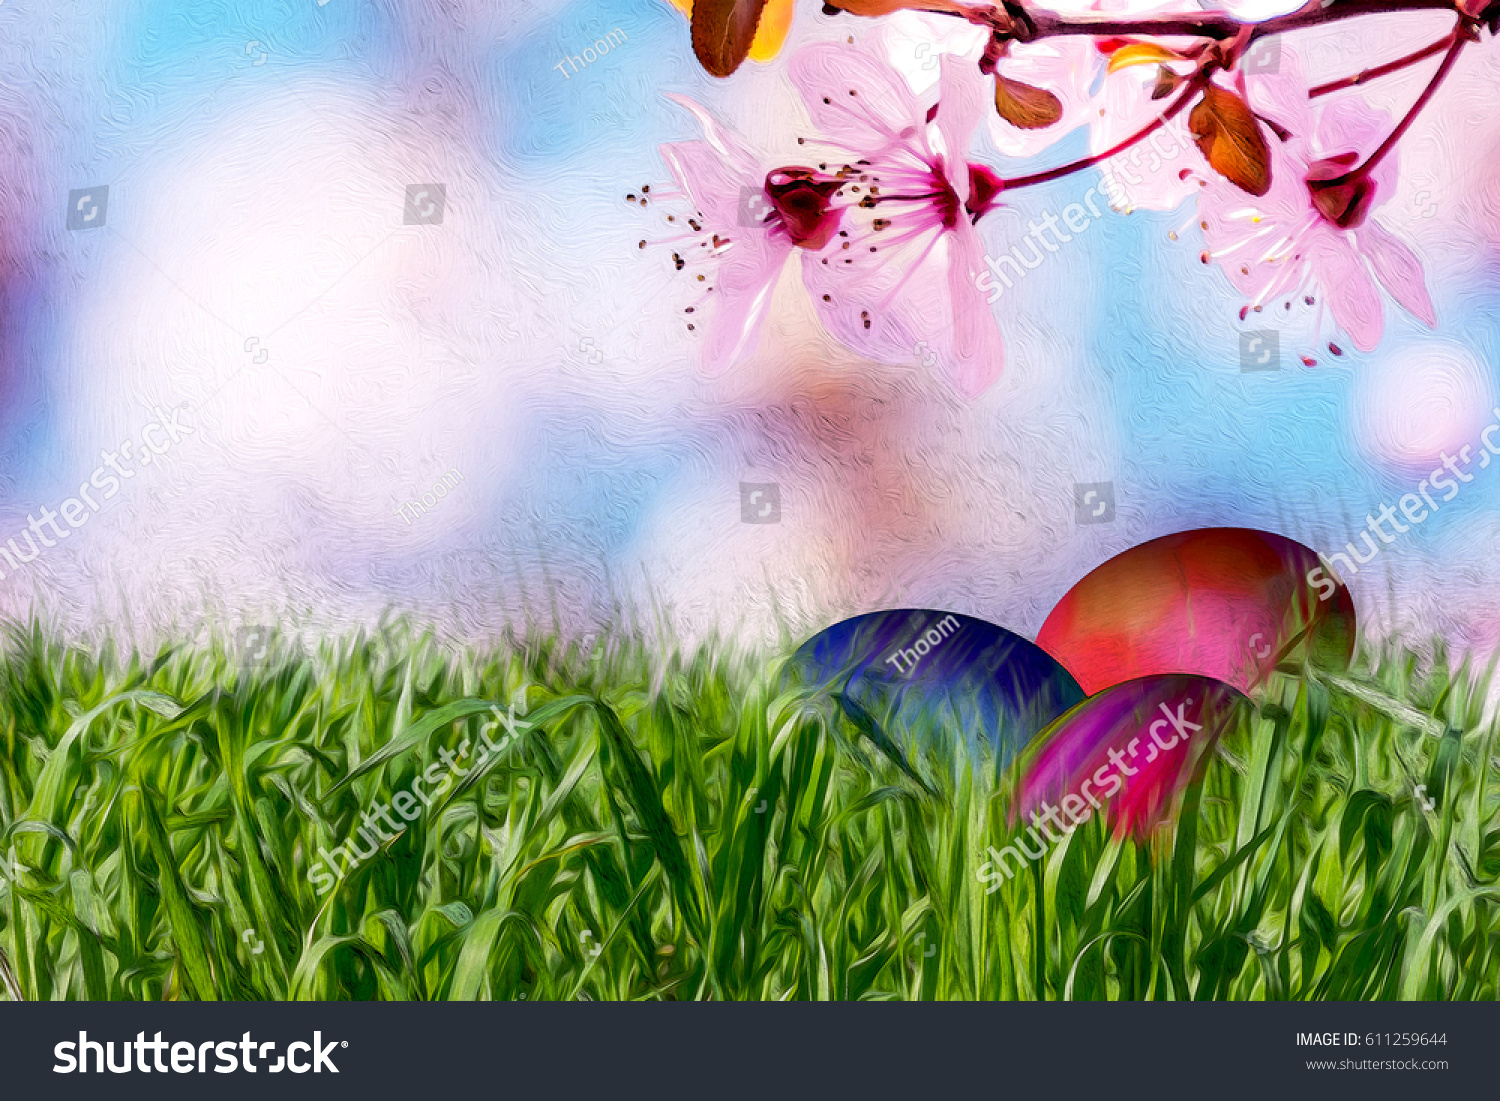 Easter Background With Colorful Painted Eggs In The Grass Spring Flowers